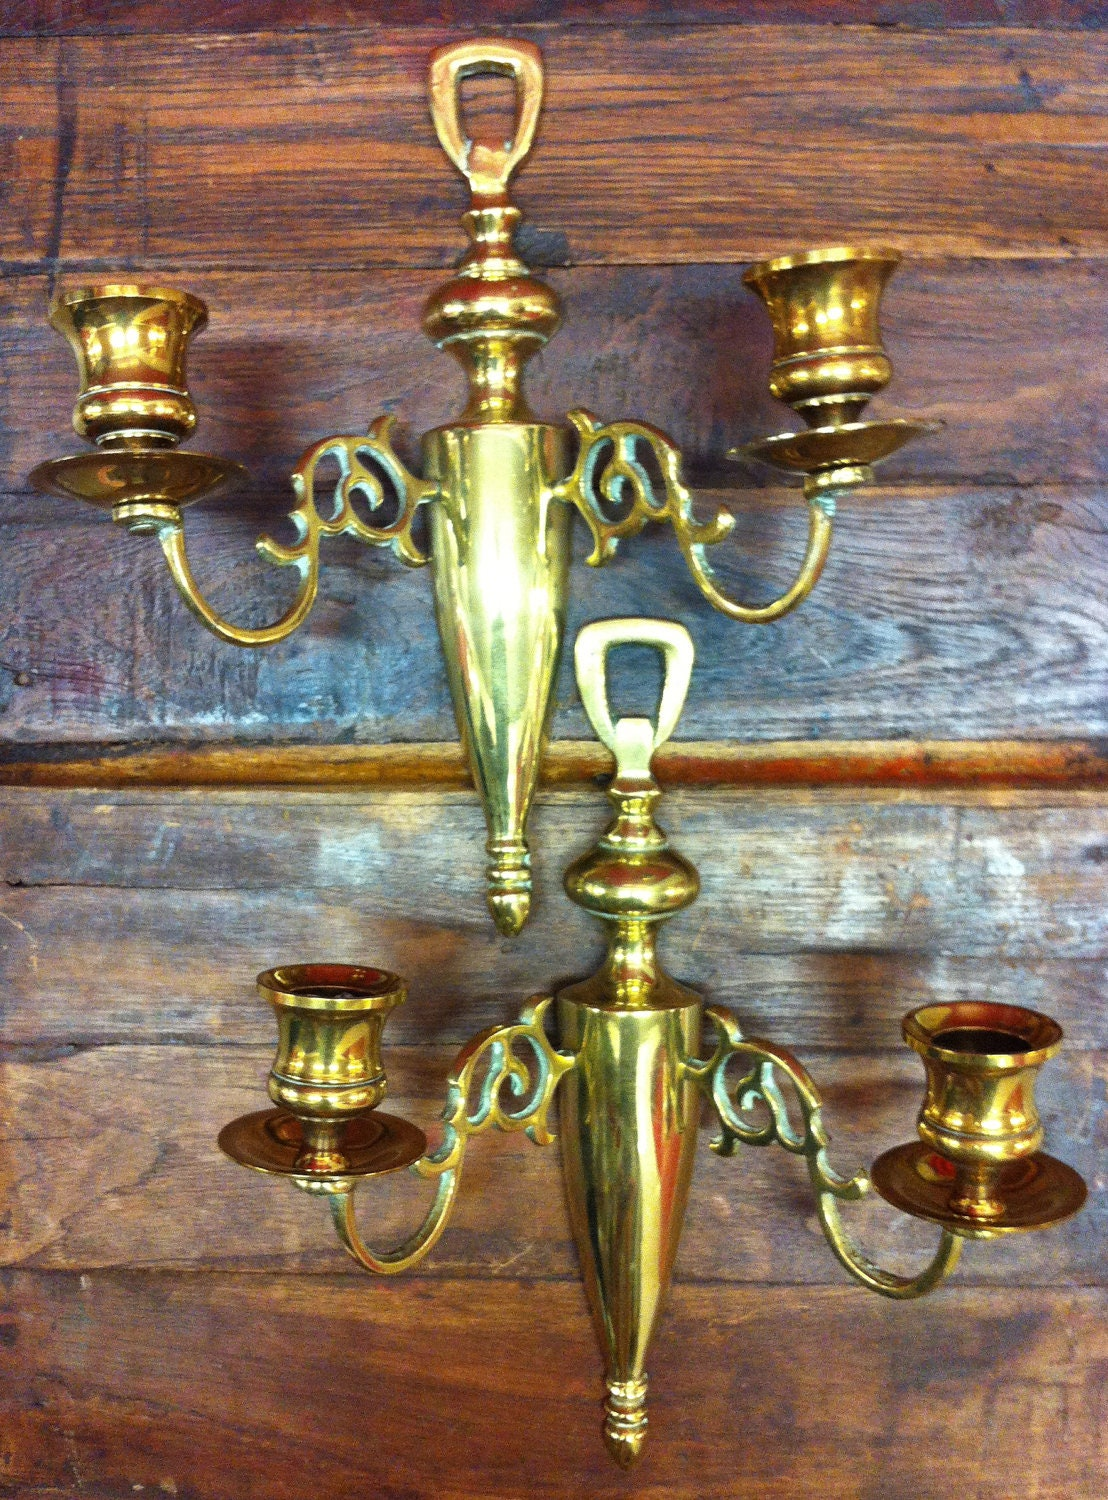 Antique Brass Double Candle Wall Sconce Set/2 by GirlMeetsBoy